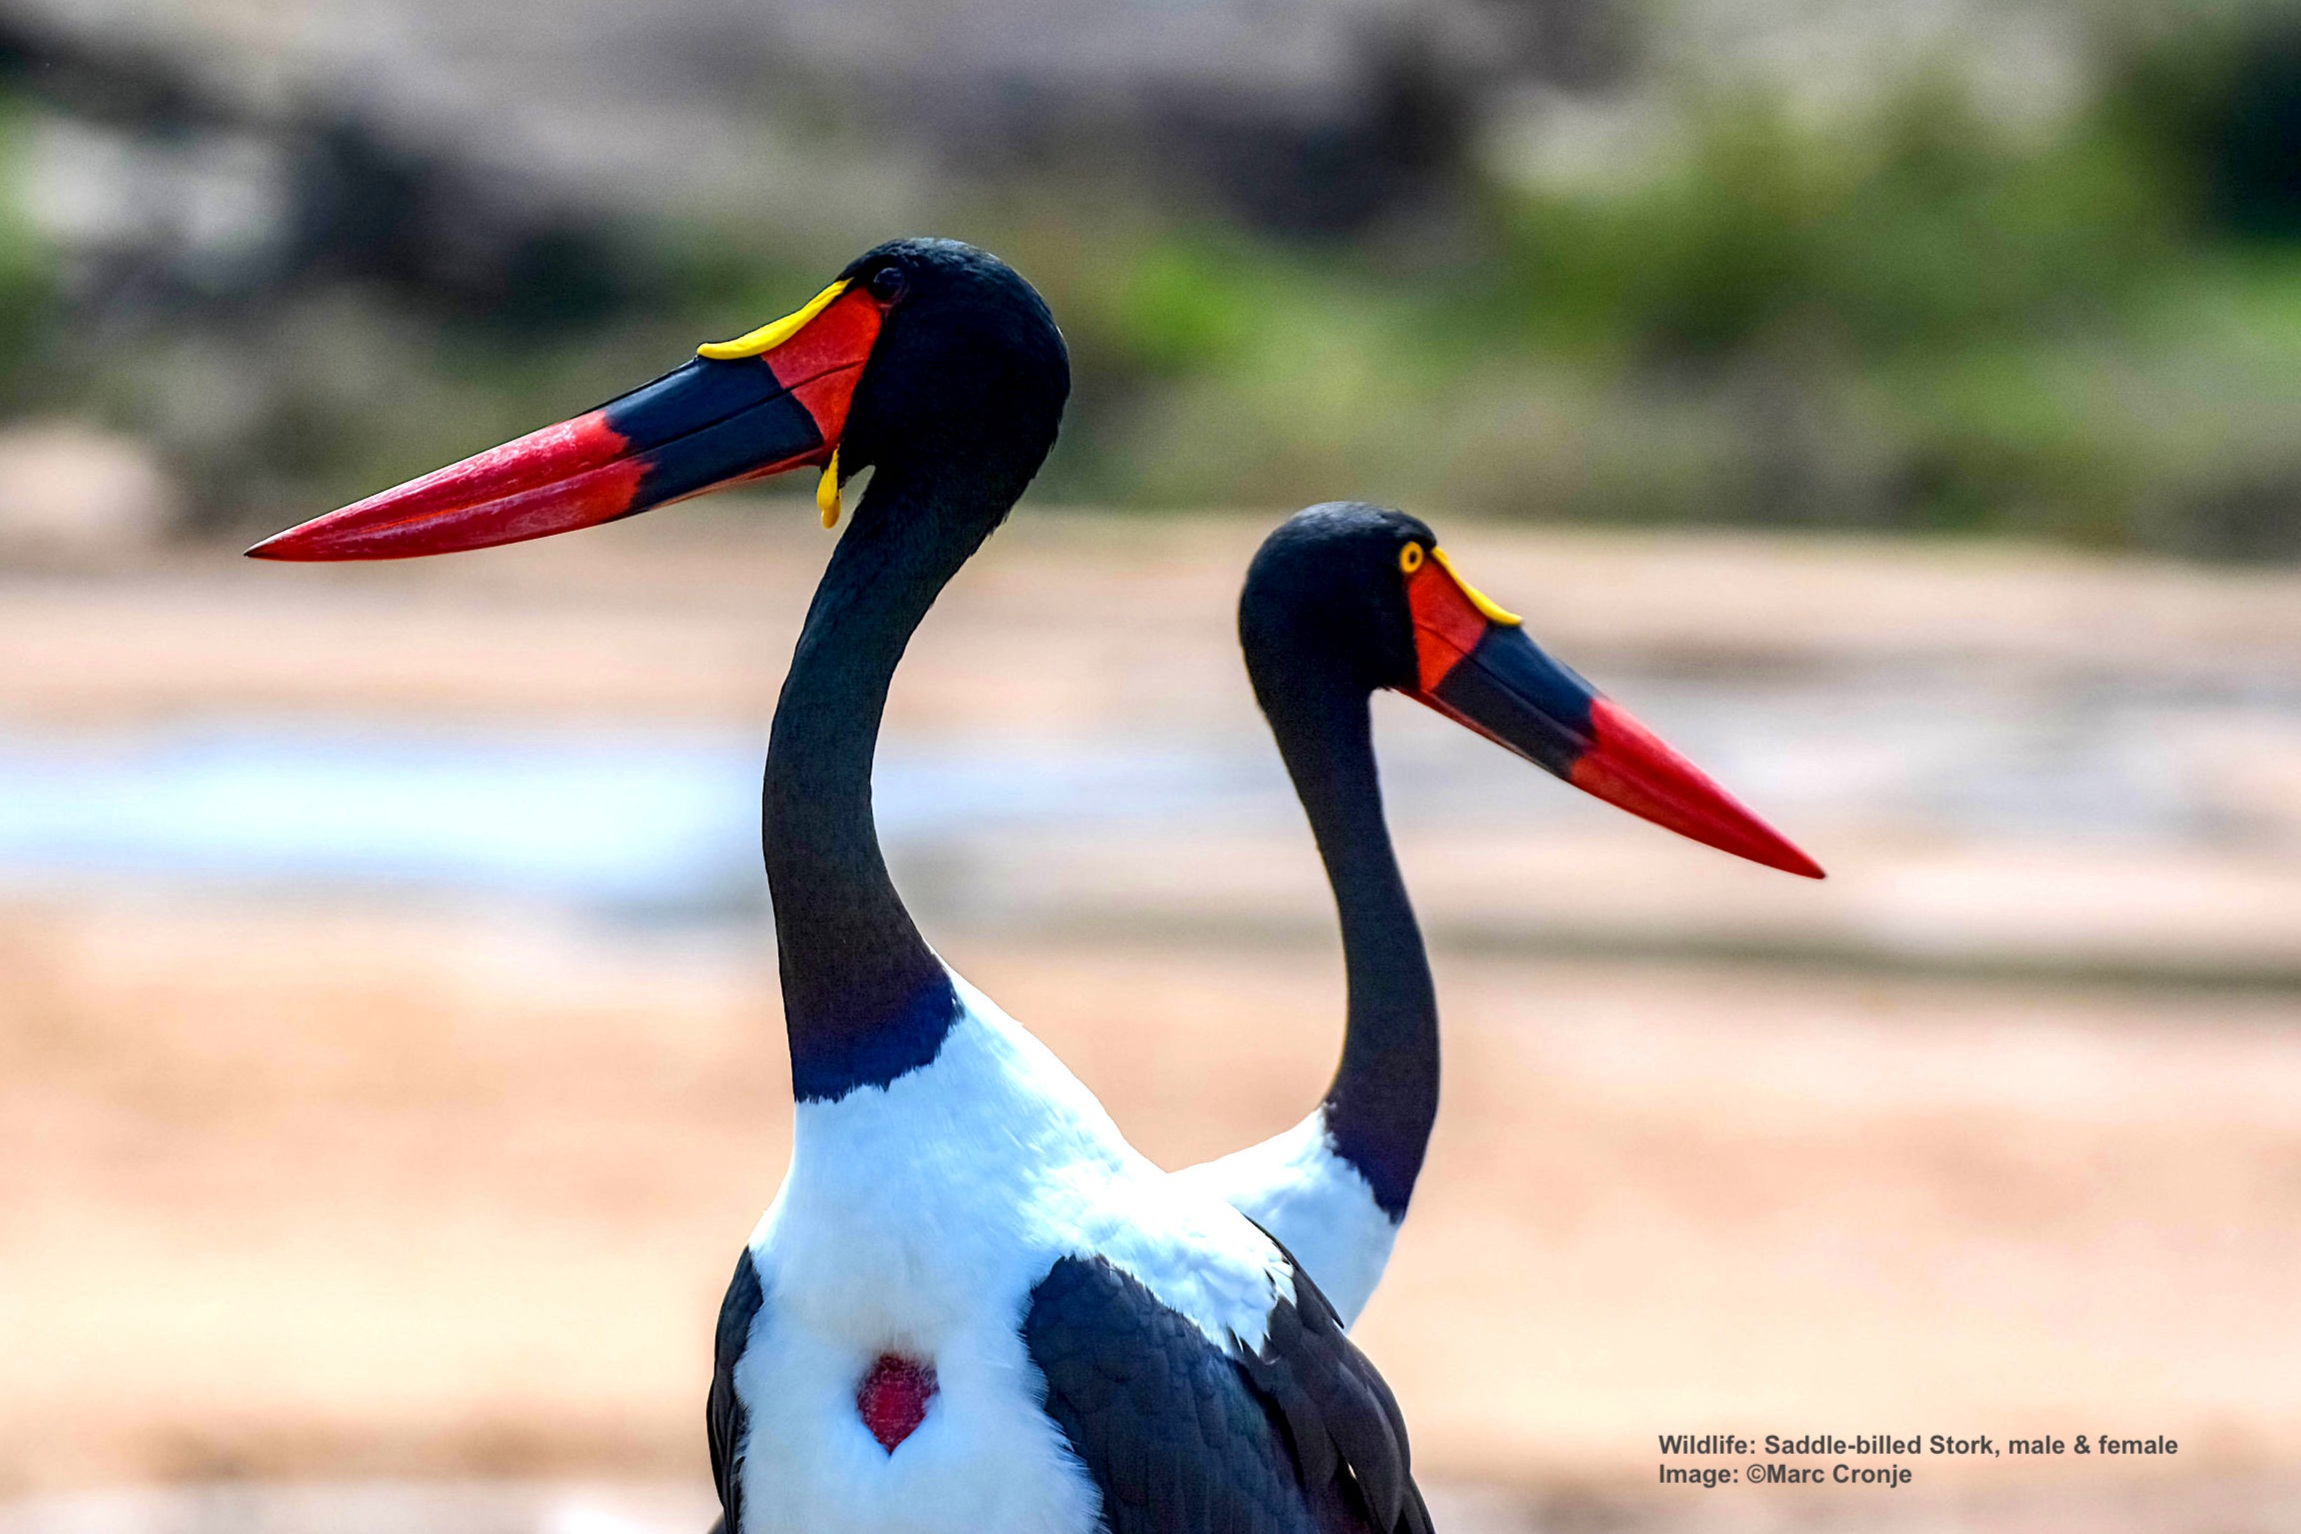 "A PAIR OF SADDLE-BILLED STORKS, ALTHOUGH SILENT IN LIFE THEY PLAYED A VITAL ROLE IN ANCIENT EGYPTIAN COMMUNICATION WHERE ITS LIKENESS WAS USED TO DENOTE THE HIEROGLYPHIC LETTER ""BA,"" PART OF RHE ANCIENT DEPICTION OF THE PHARAOH KHABA'S NAME. IMAGE:  ©MARC CRONJE"